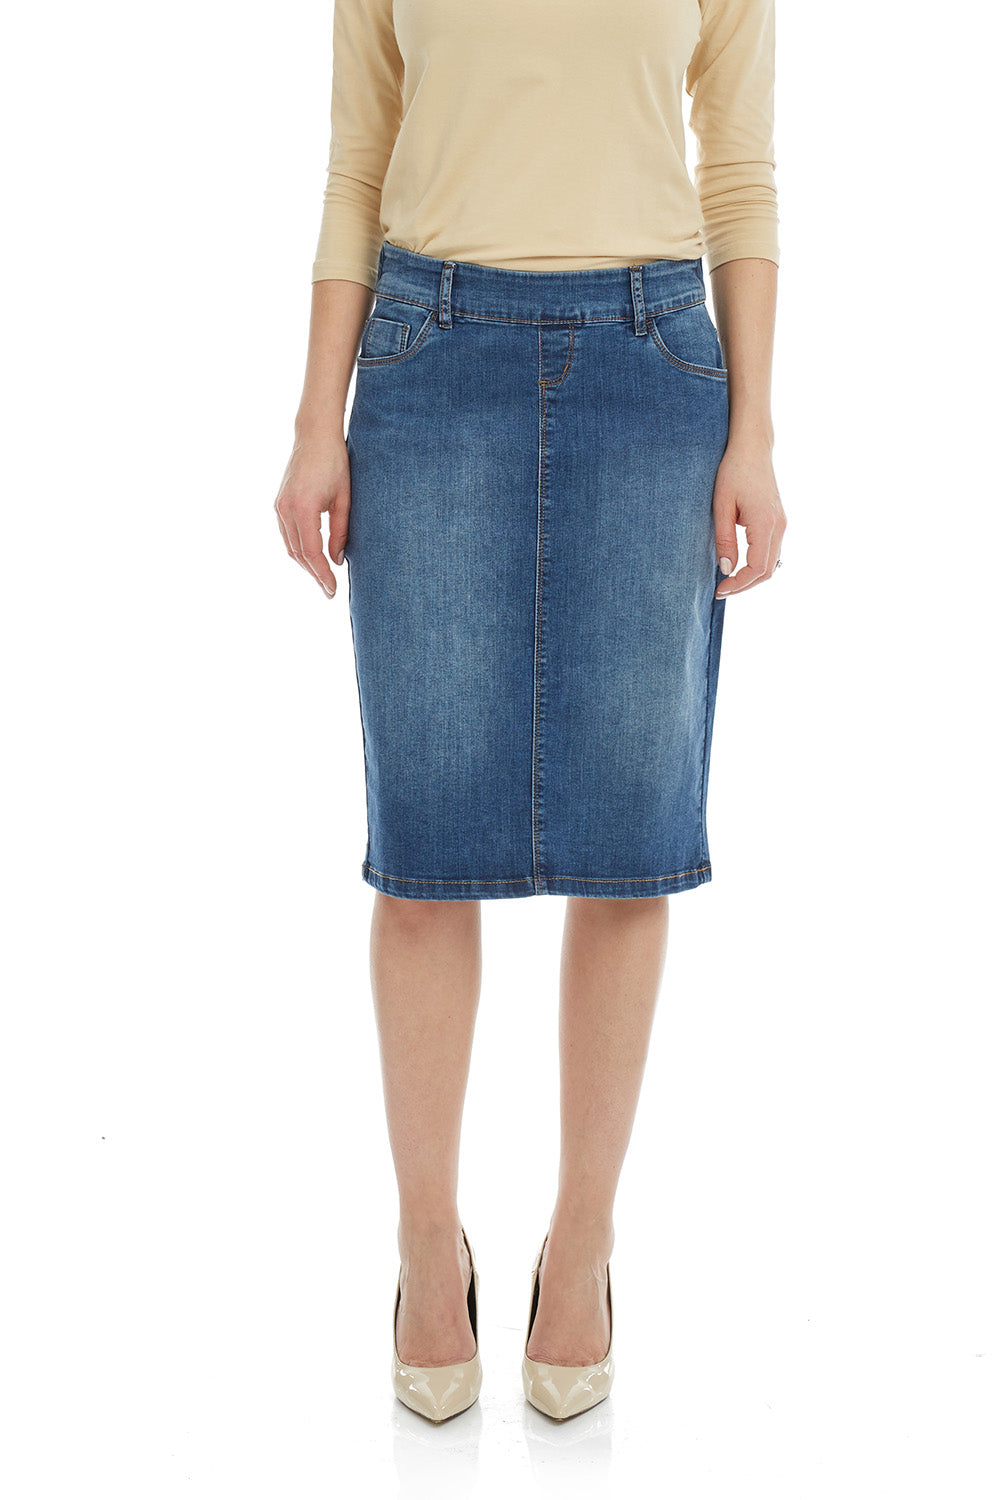 Esteez MANHATTAN Skirt - Classic Stretch Jean Skirt for WOMEN - BLUE